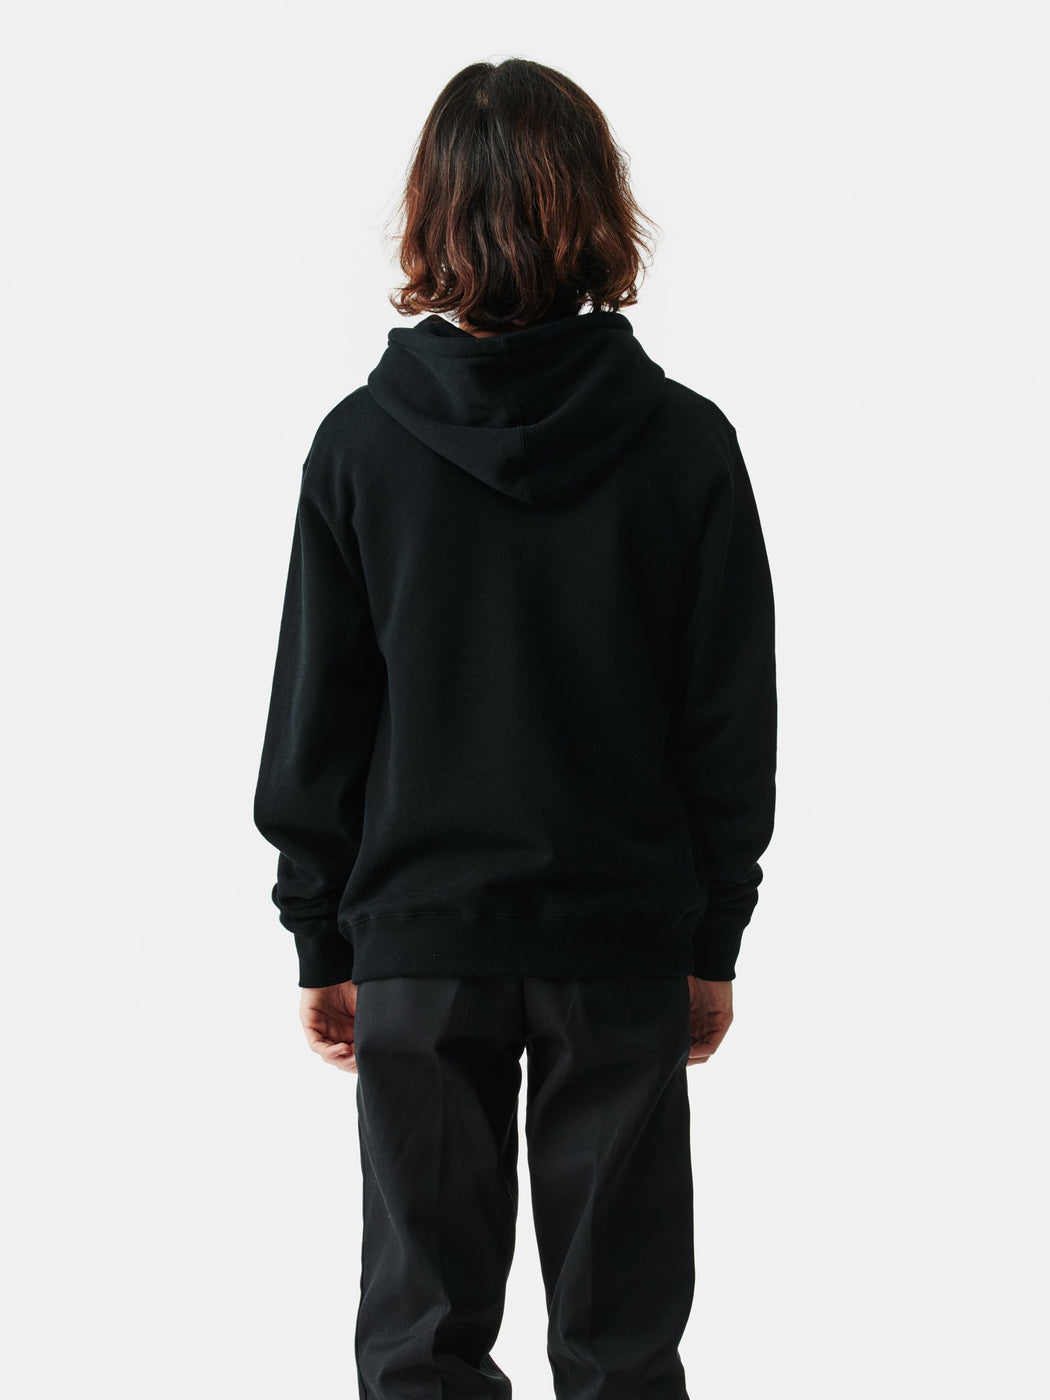 ALOYE Color Block Zip-Up Hoodie Black-Blue